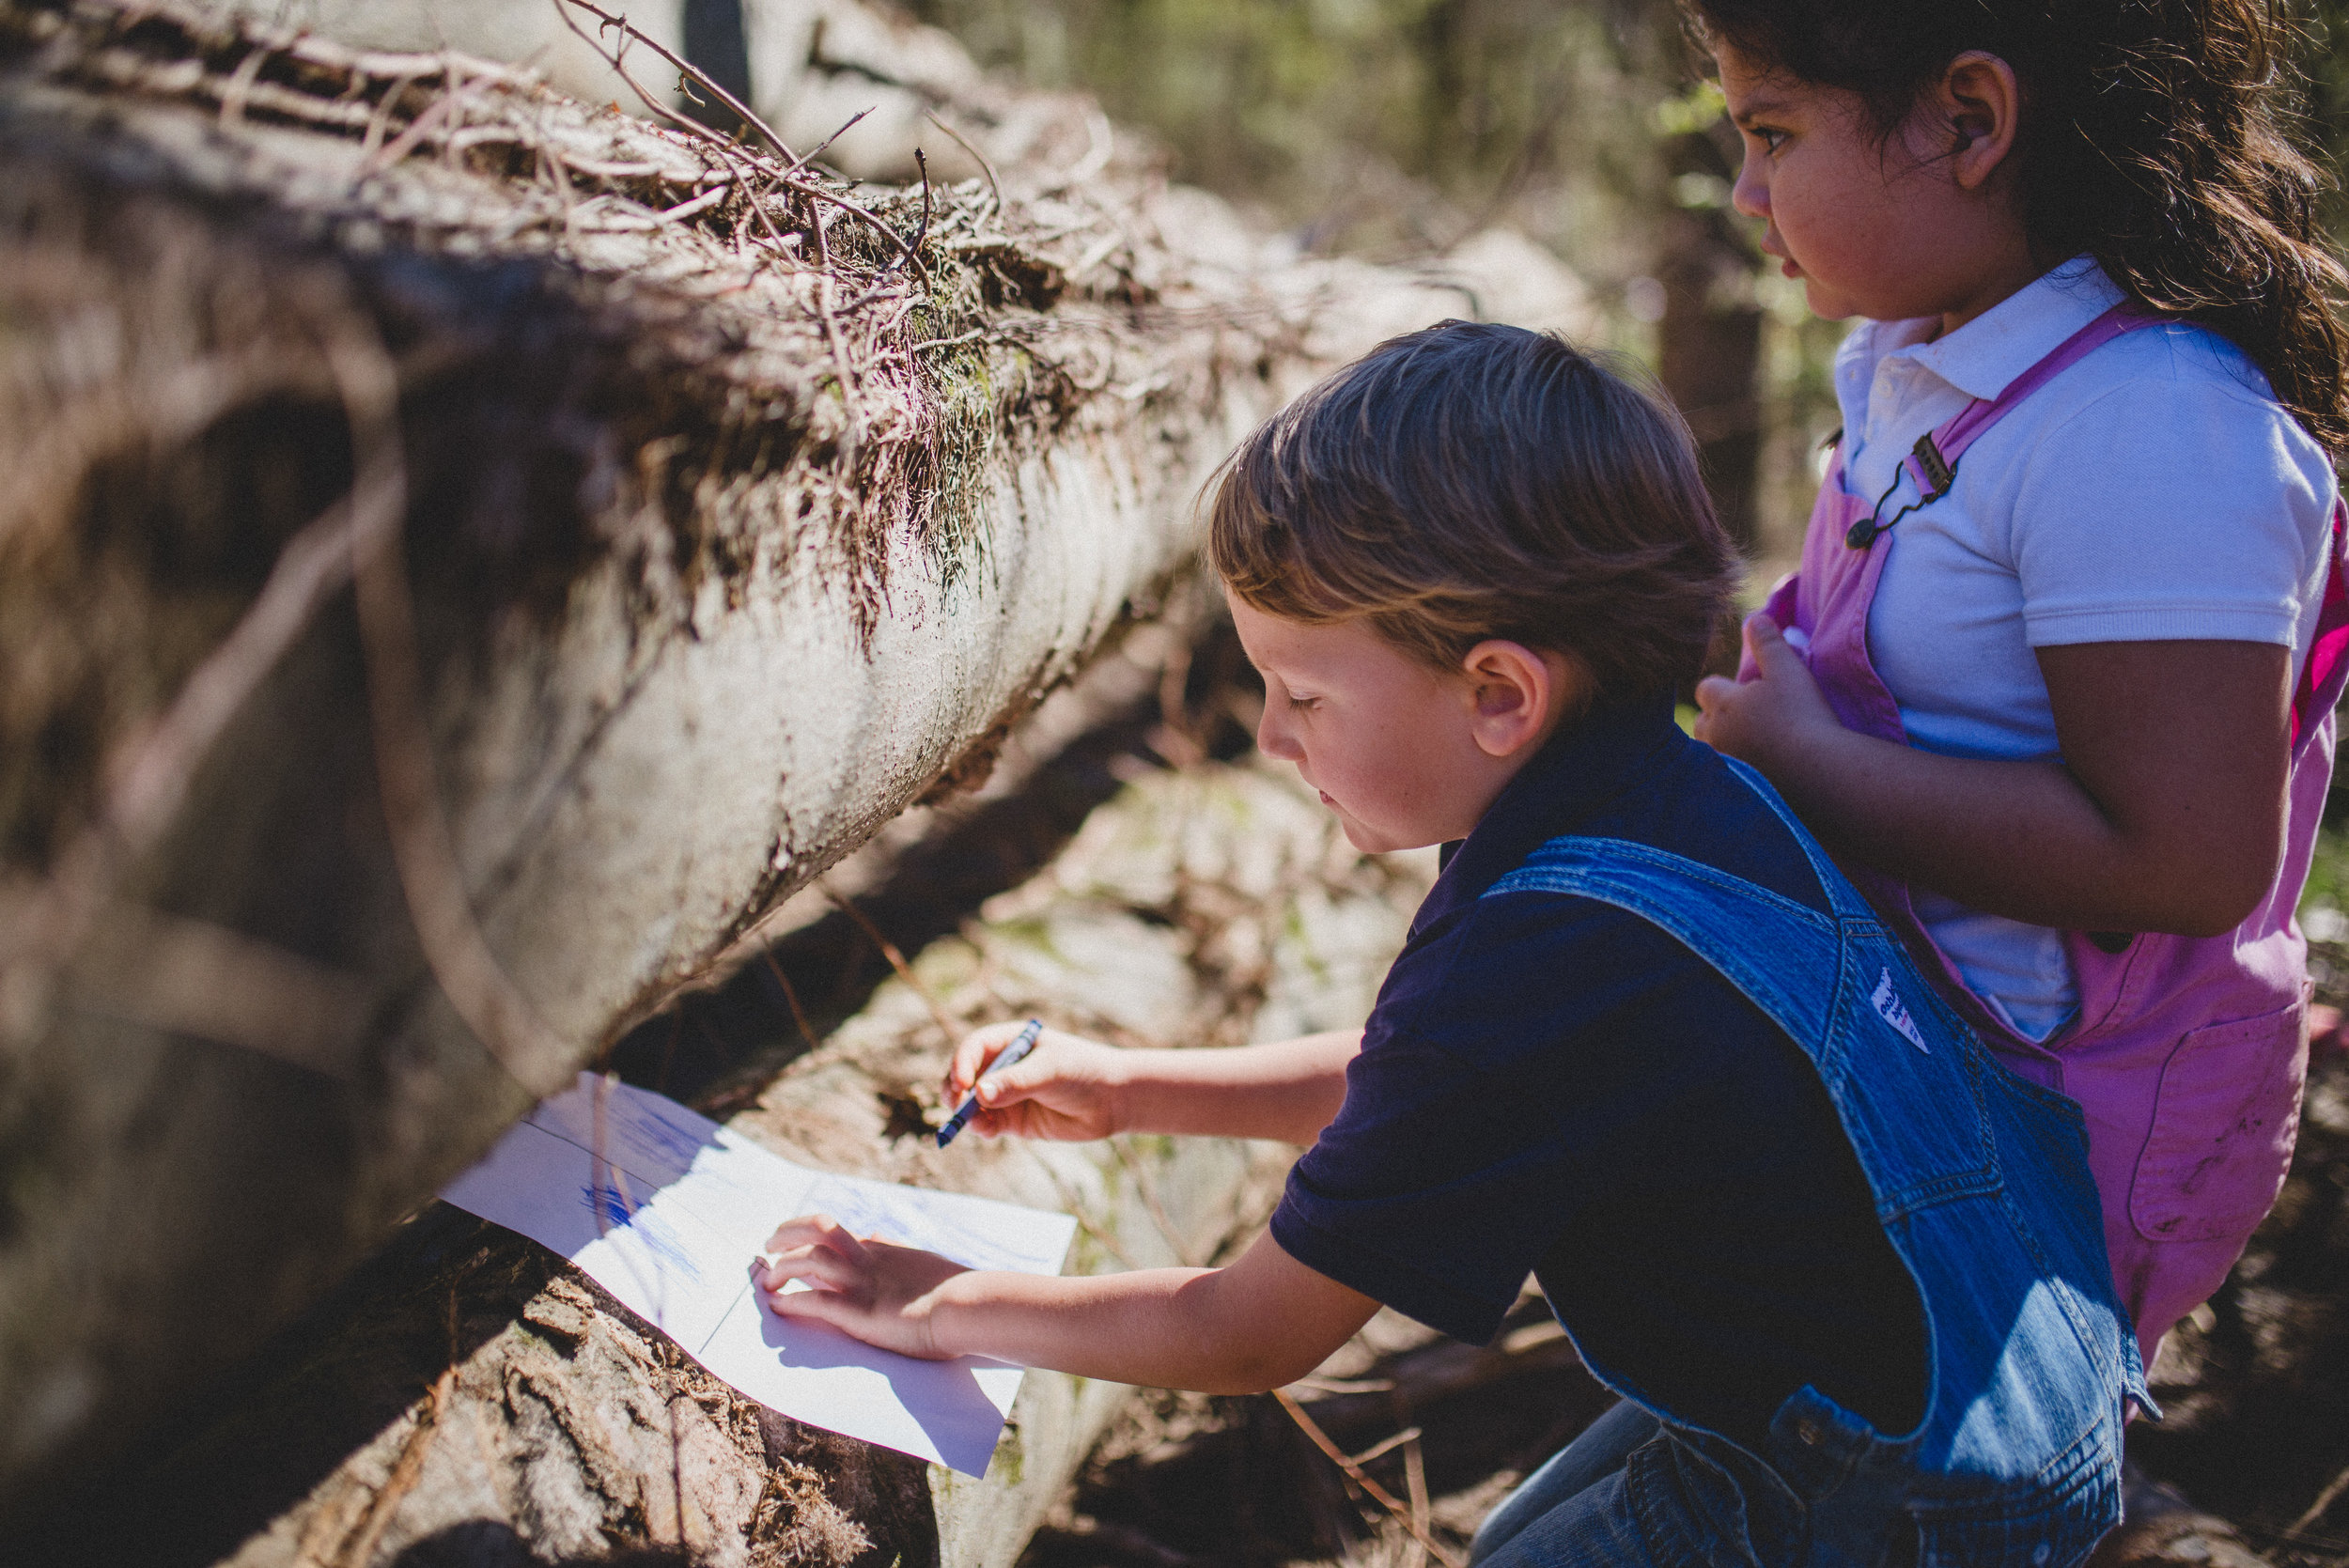 As students explore, they record observations they make when they look more closely at the bugs, flowers, and trees they encounter.